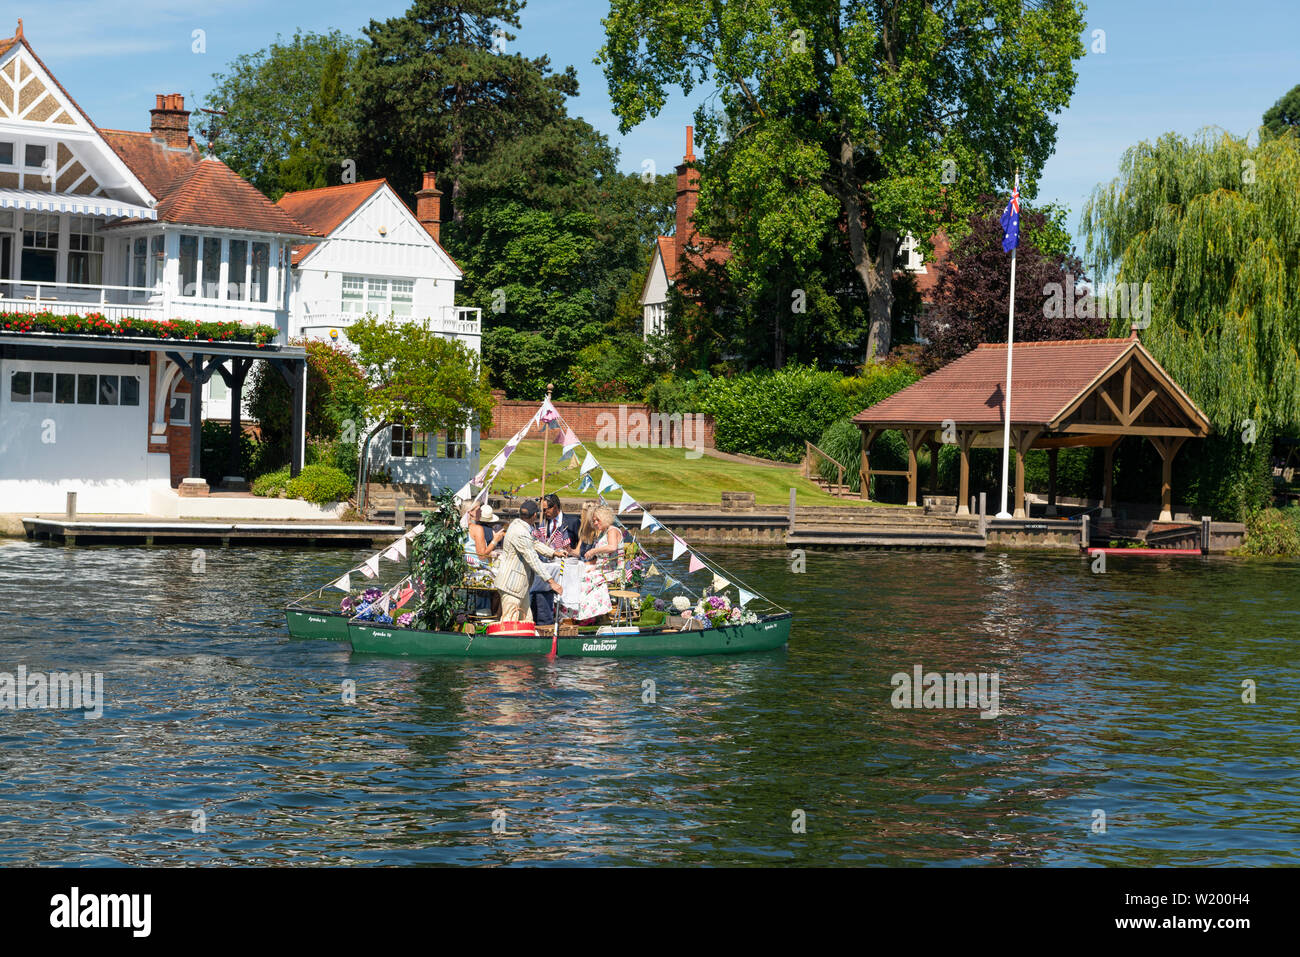 Henley on Thames, Berkshire, UK. 4th July, 2019. Henley Royal Regatta.Regatta spectators paddling a 'catamaran canoe' to moor up along  side  the wooden  boom separating the river traffic from the race on the River Thames  to view the afternoons  racing in style .Credit Gary Blake/Alamy Live - Stock Image